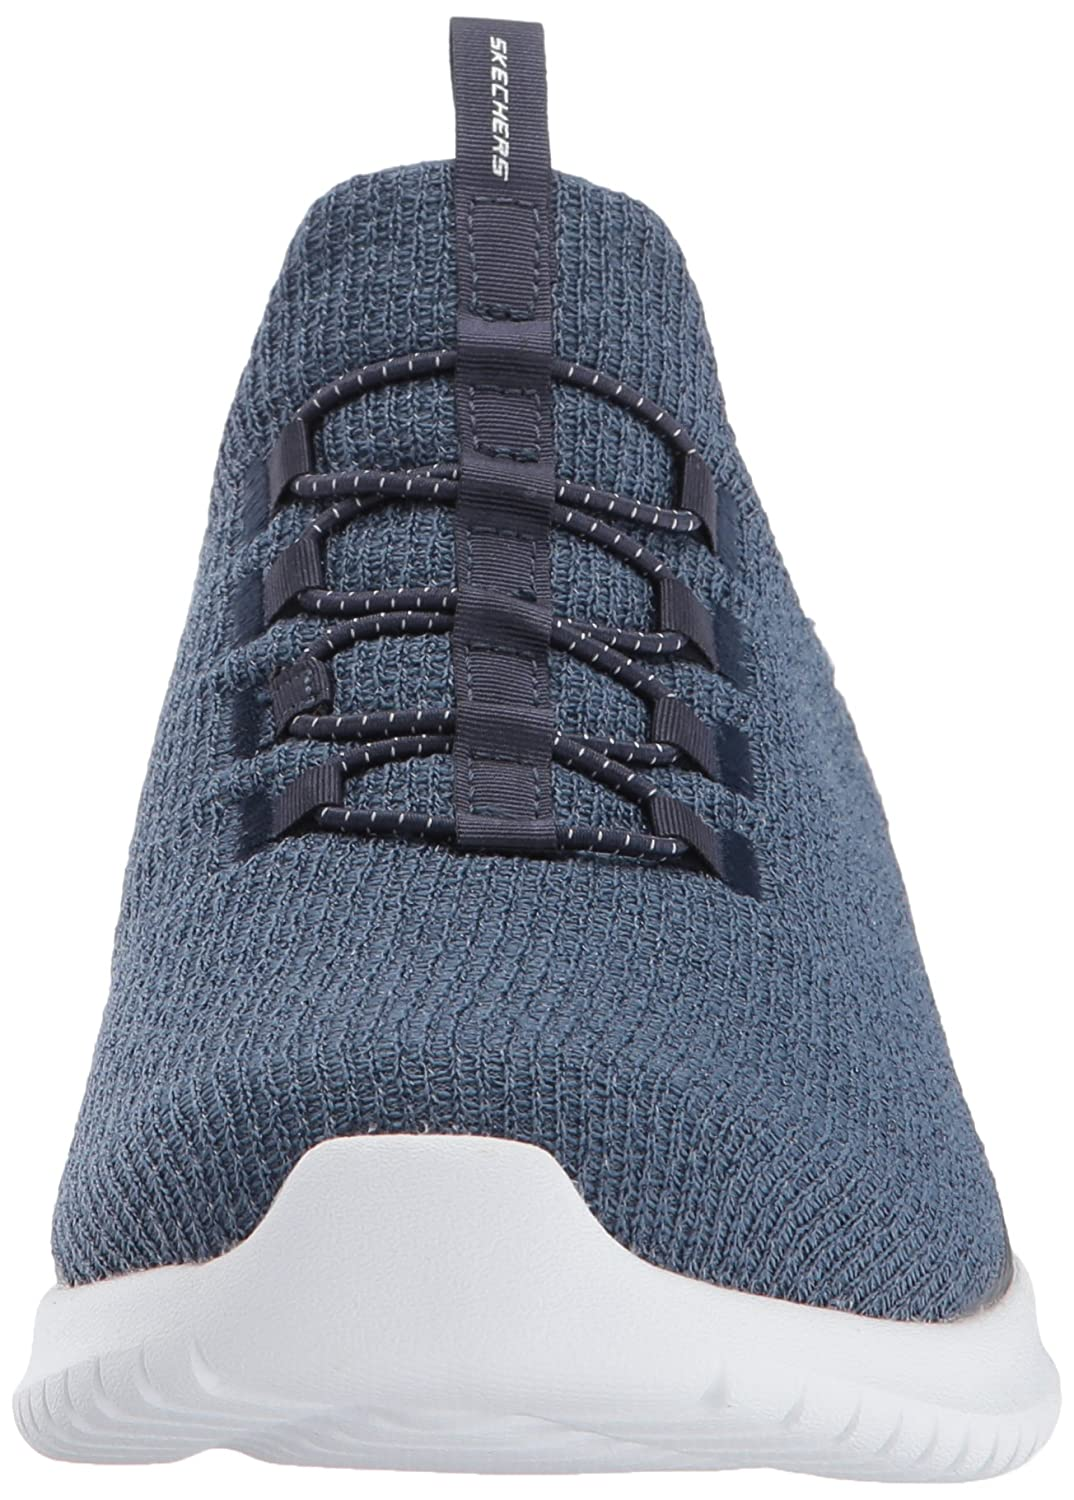 Skechers Women's Ultra Flex Sneaker B01N13BF10 9.5 B(M) US|Navy